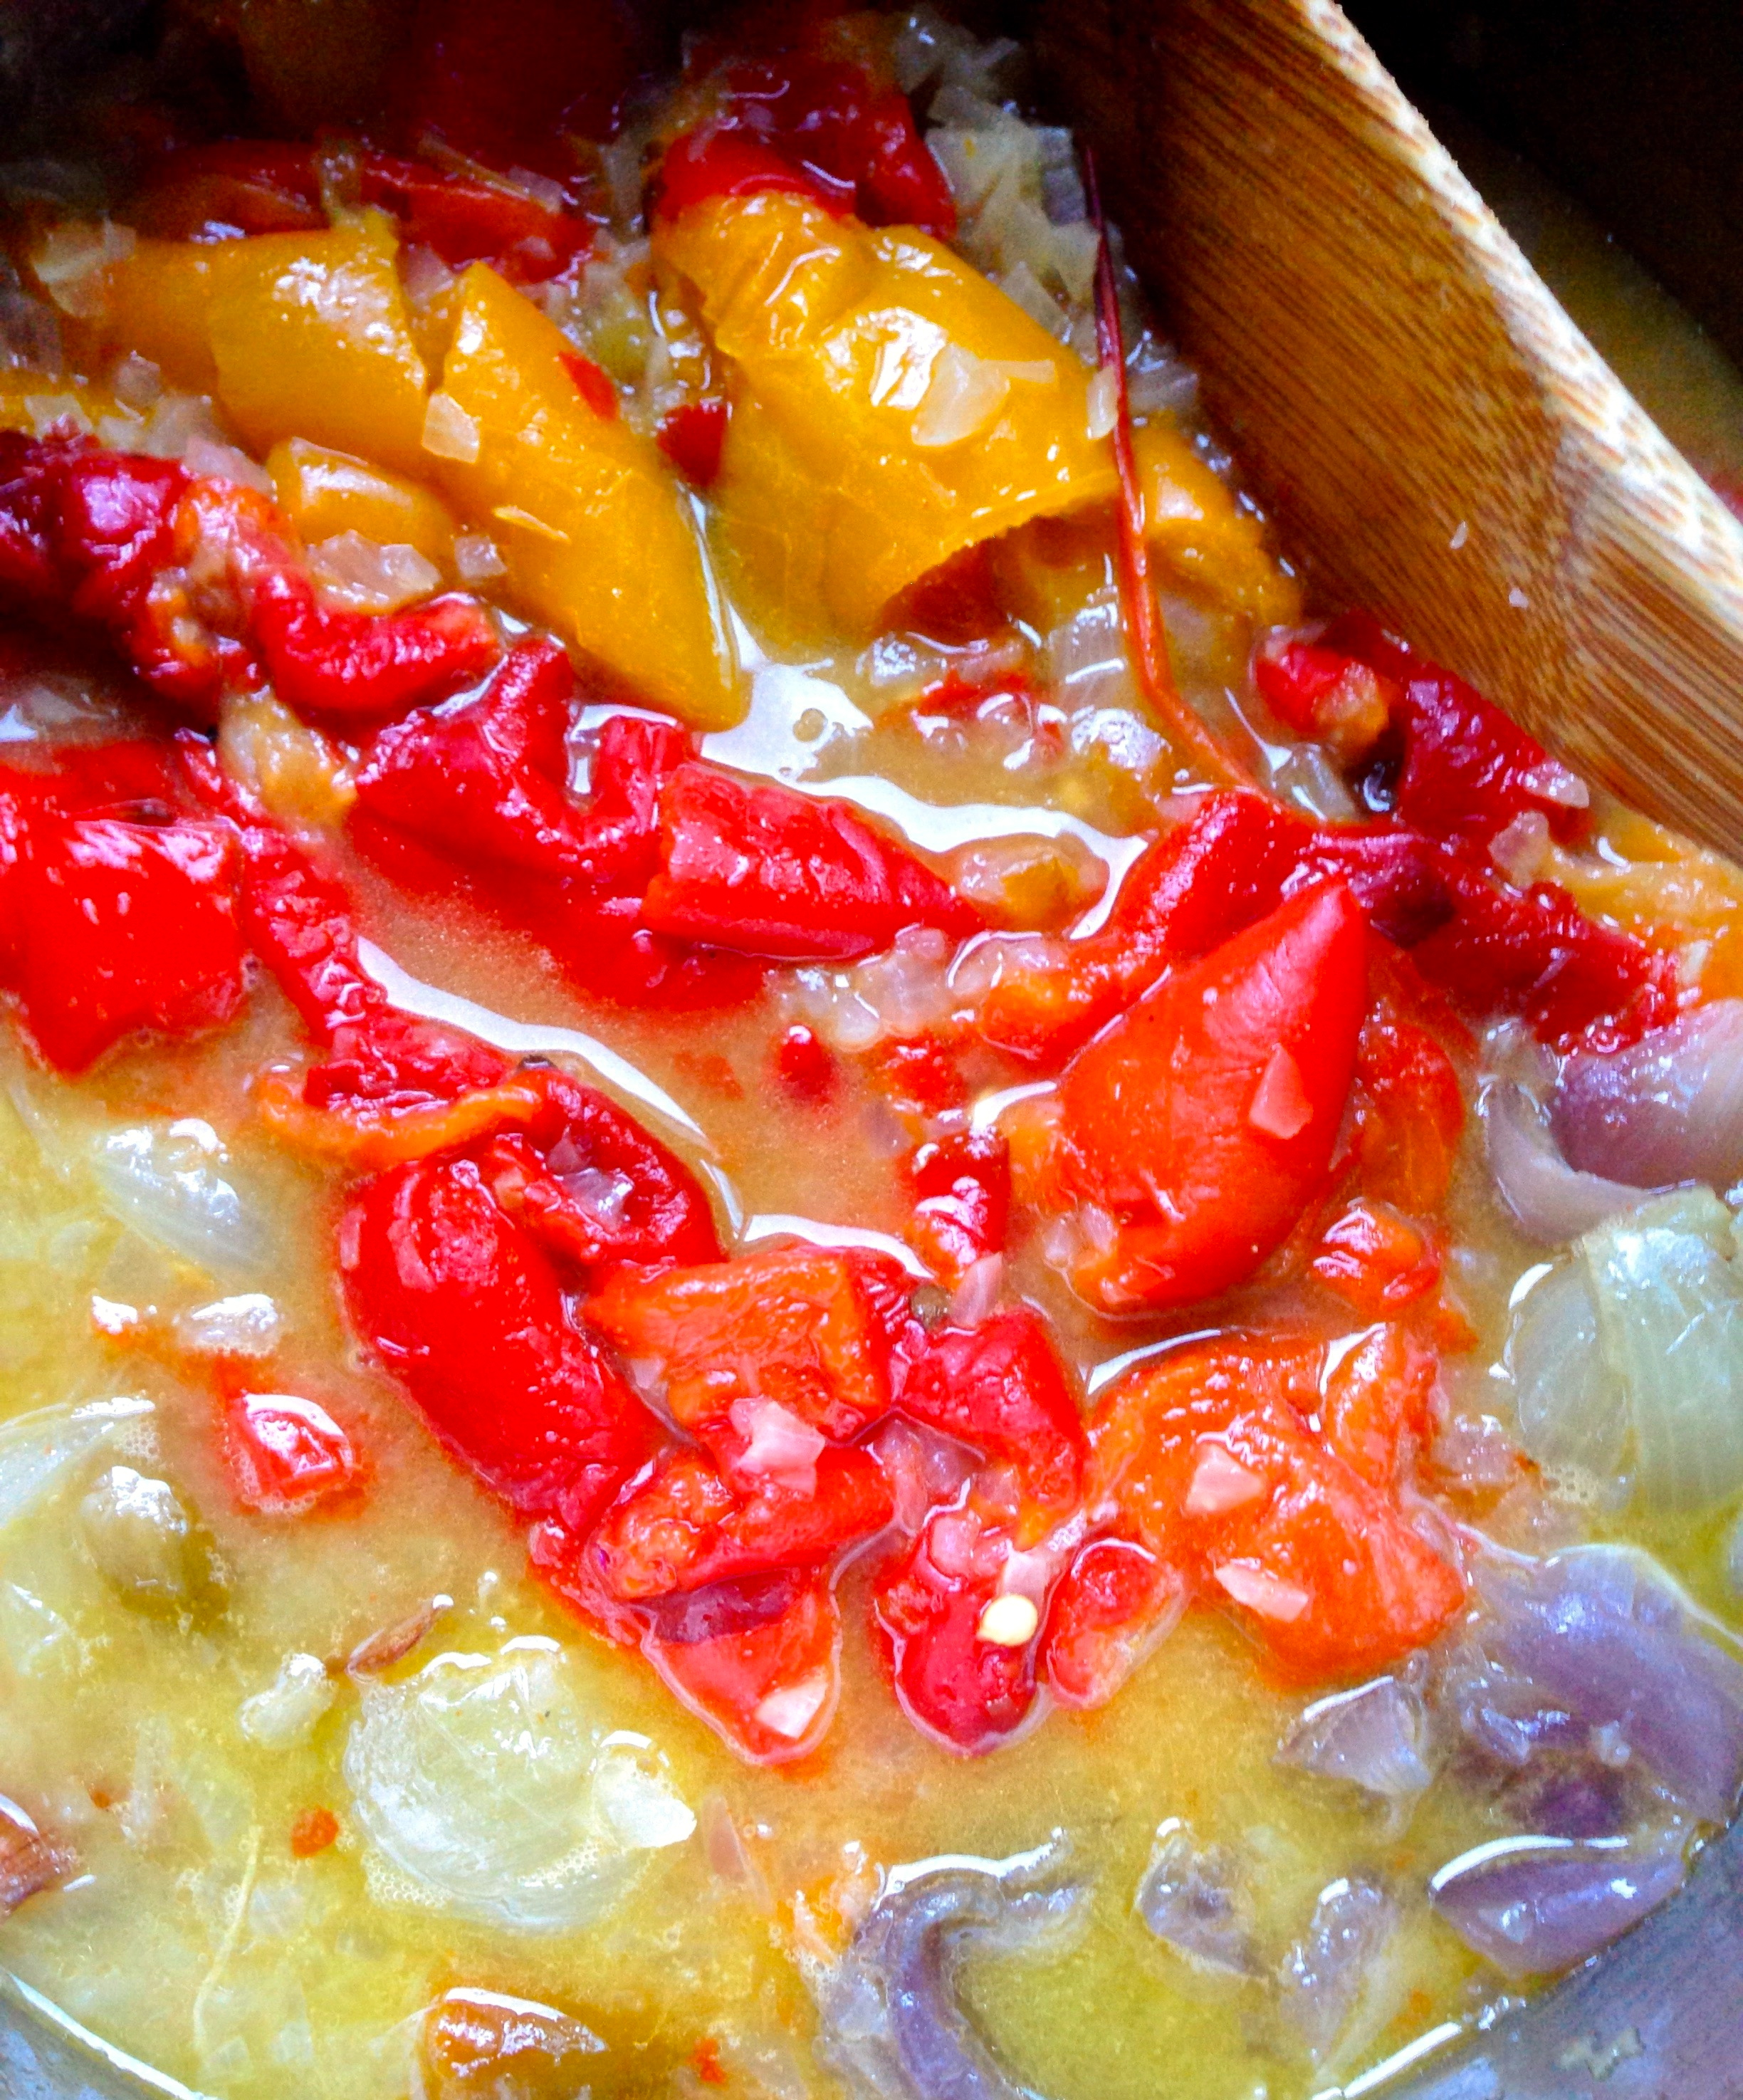 Roasted Red Pepper Coulis - in the making